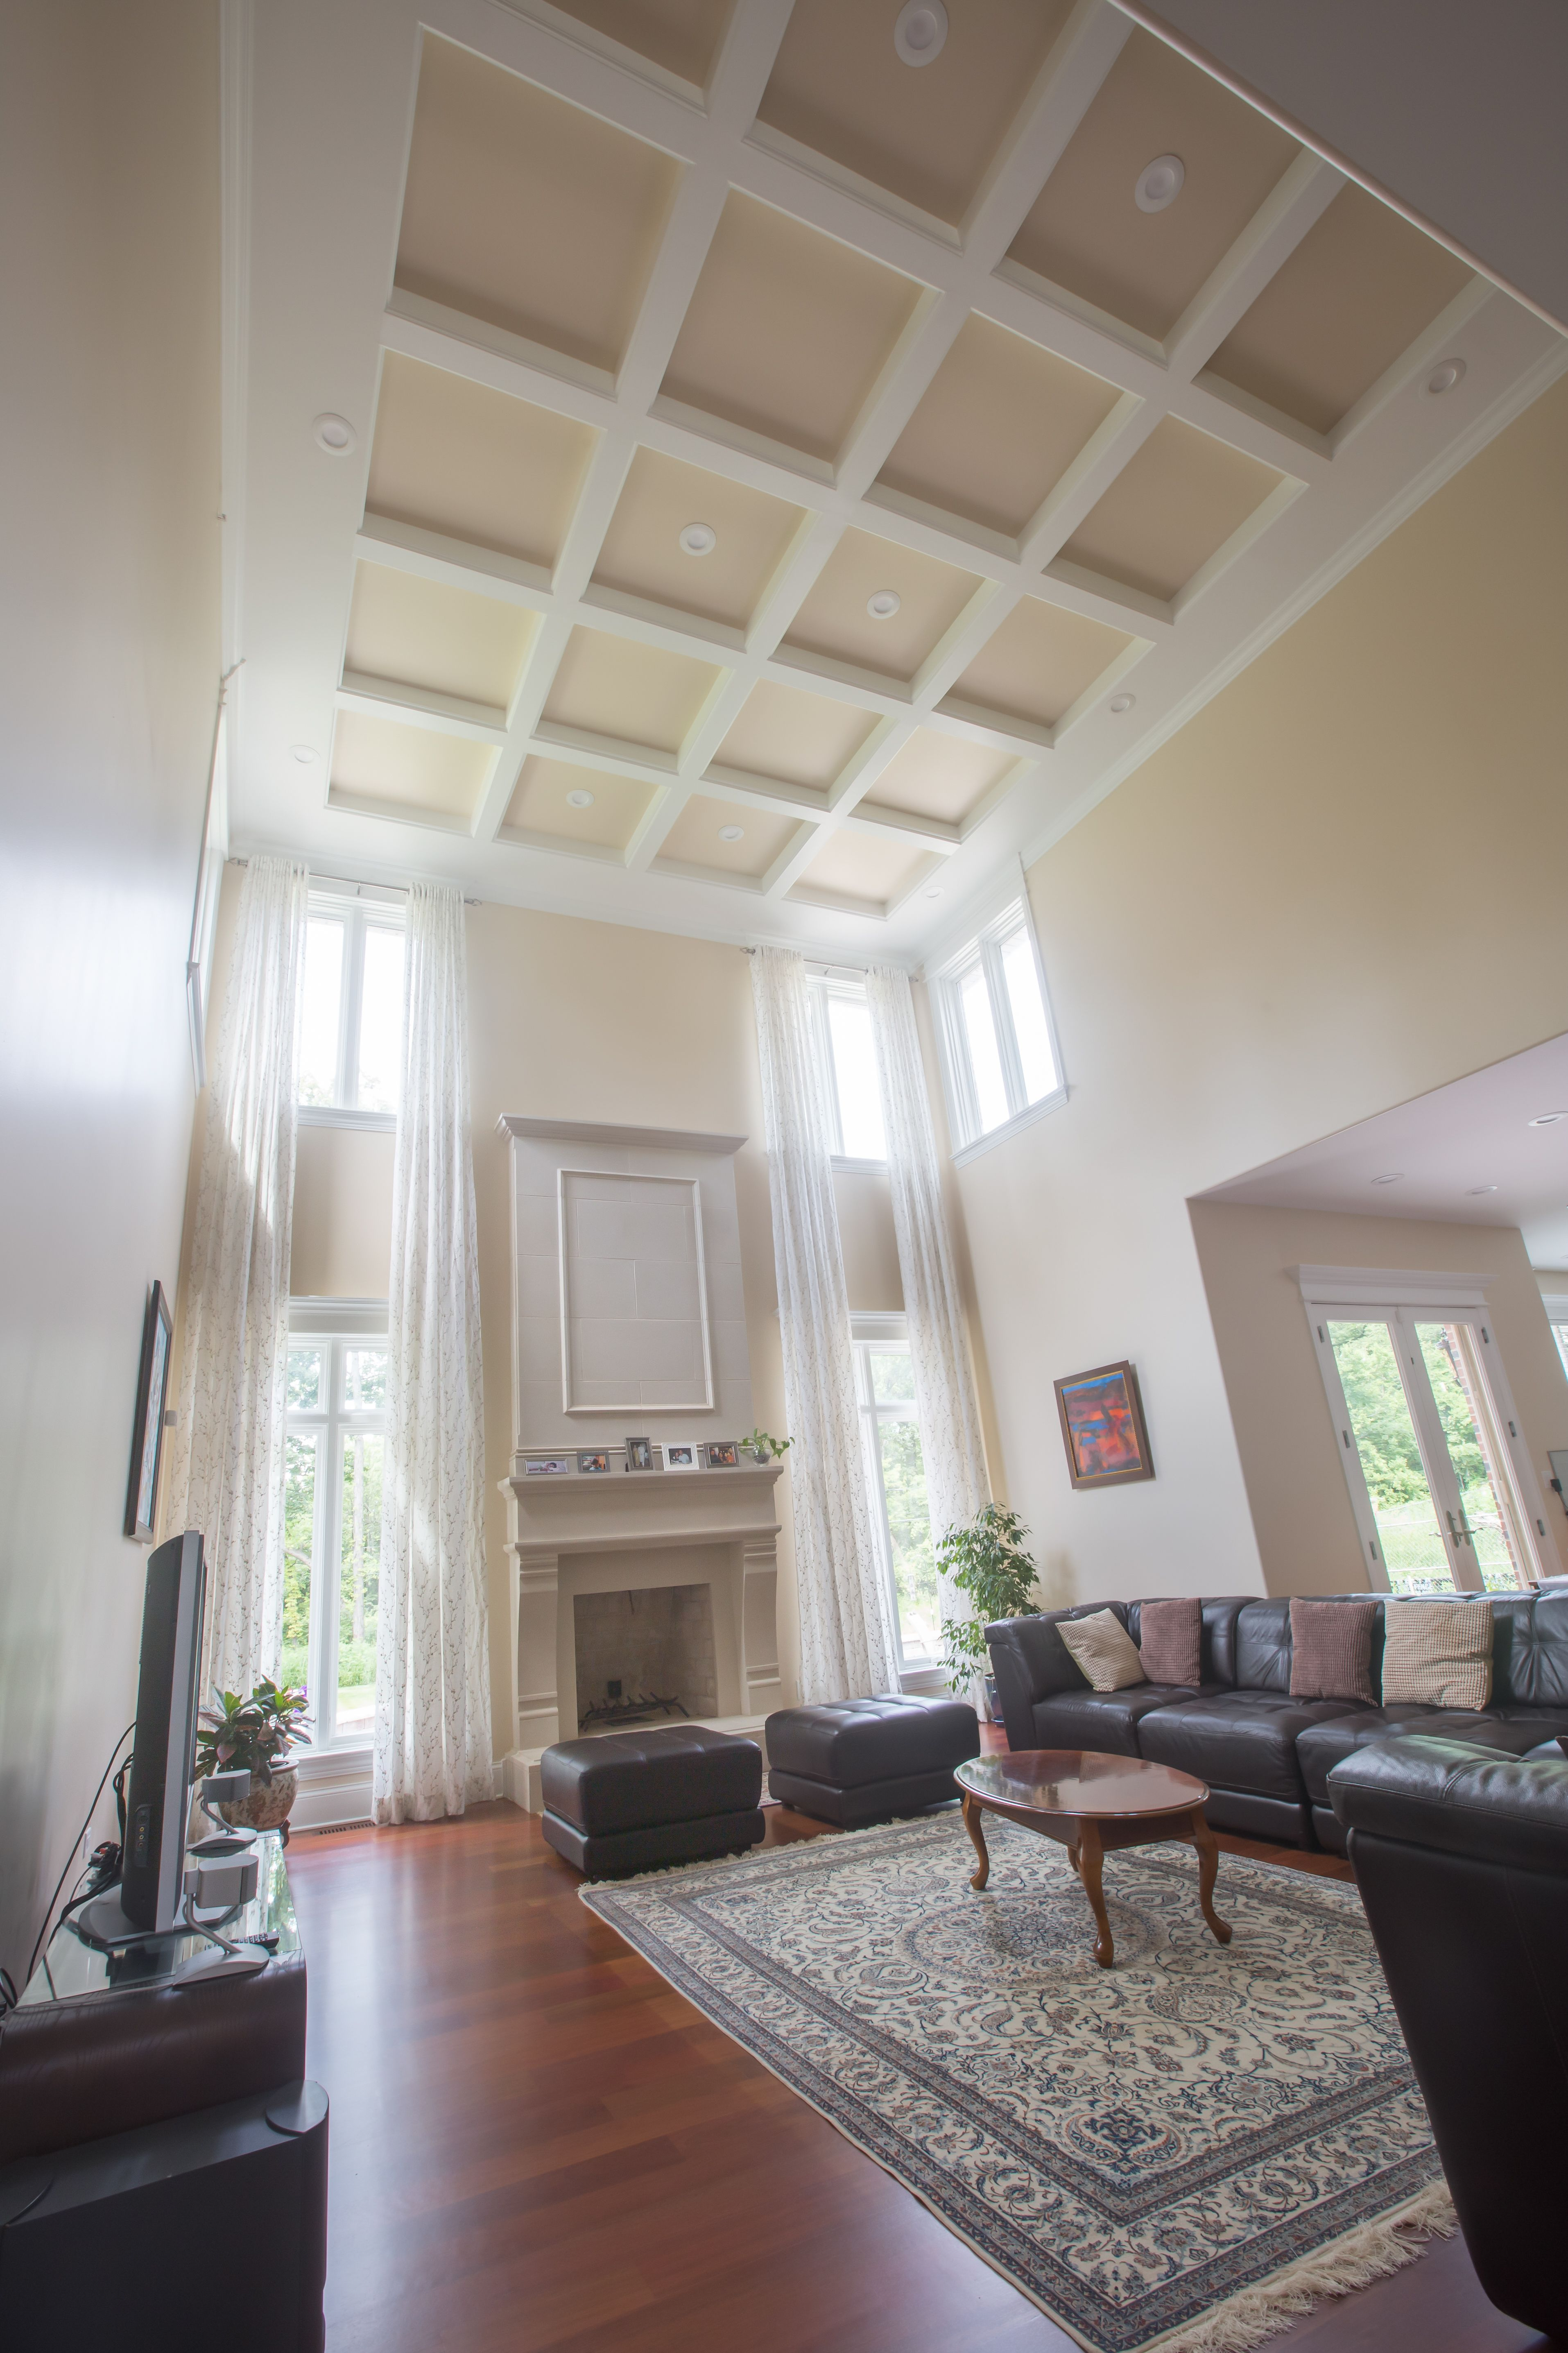 Coffered ceilings are affordable with Trim-Tex and the